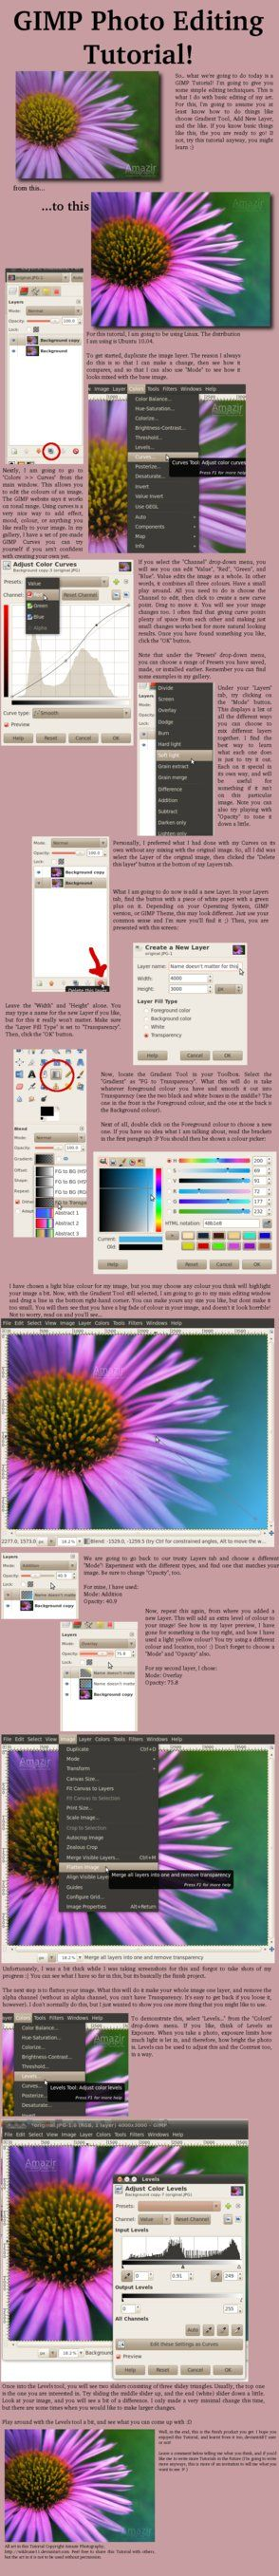 GIMP Photo Editing Tutorial by miontre